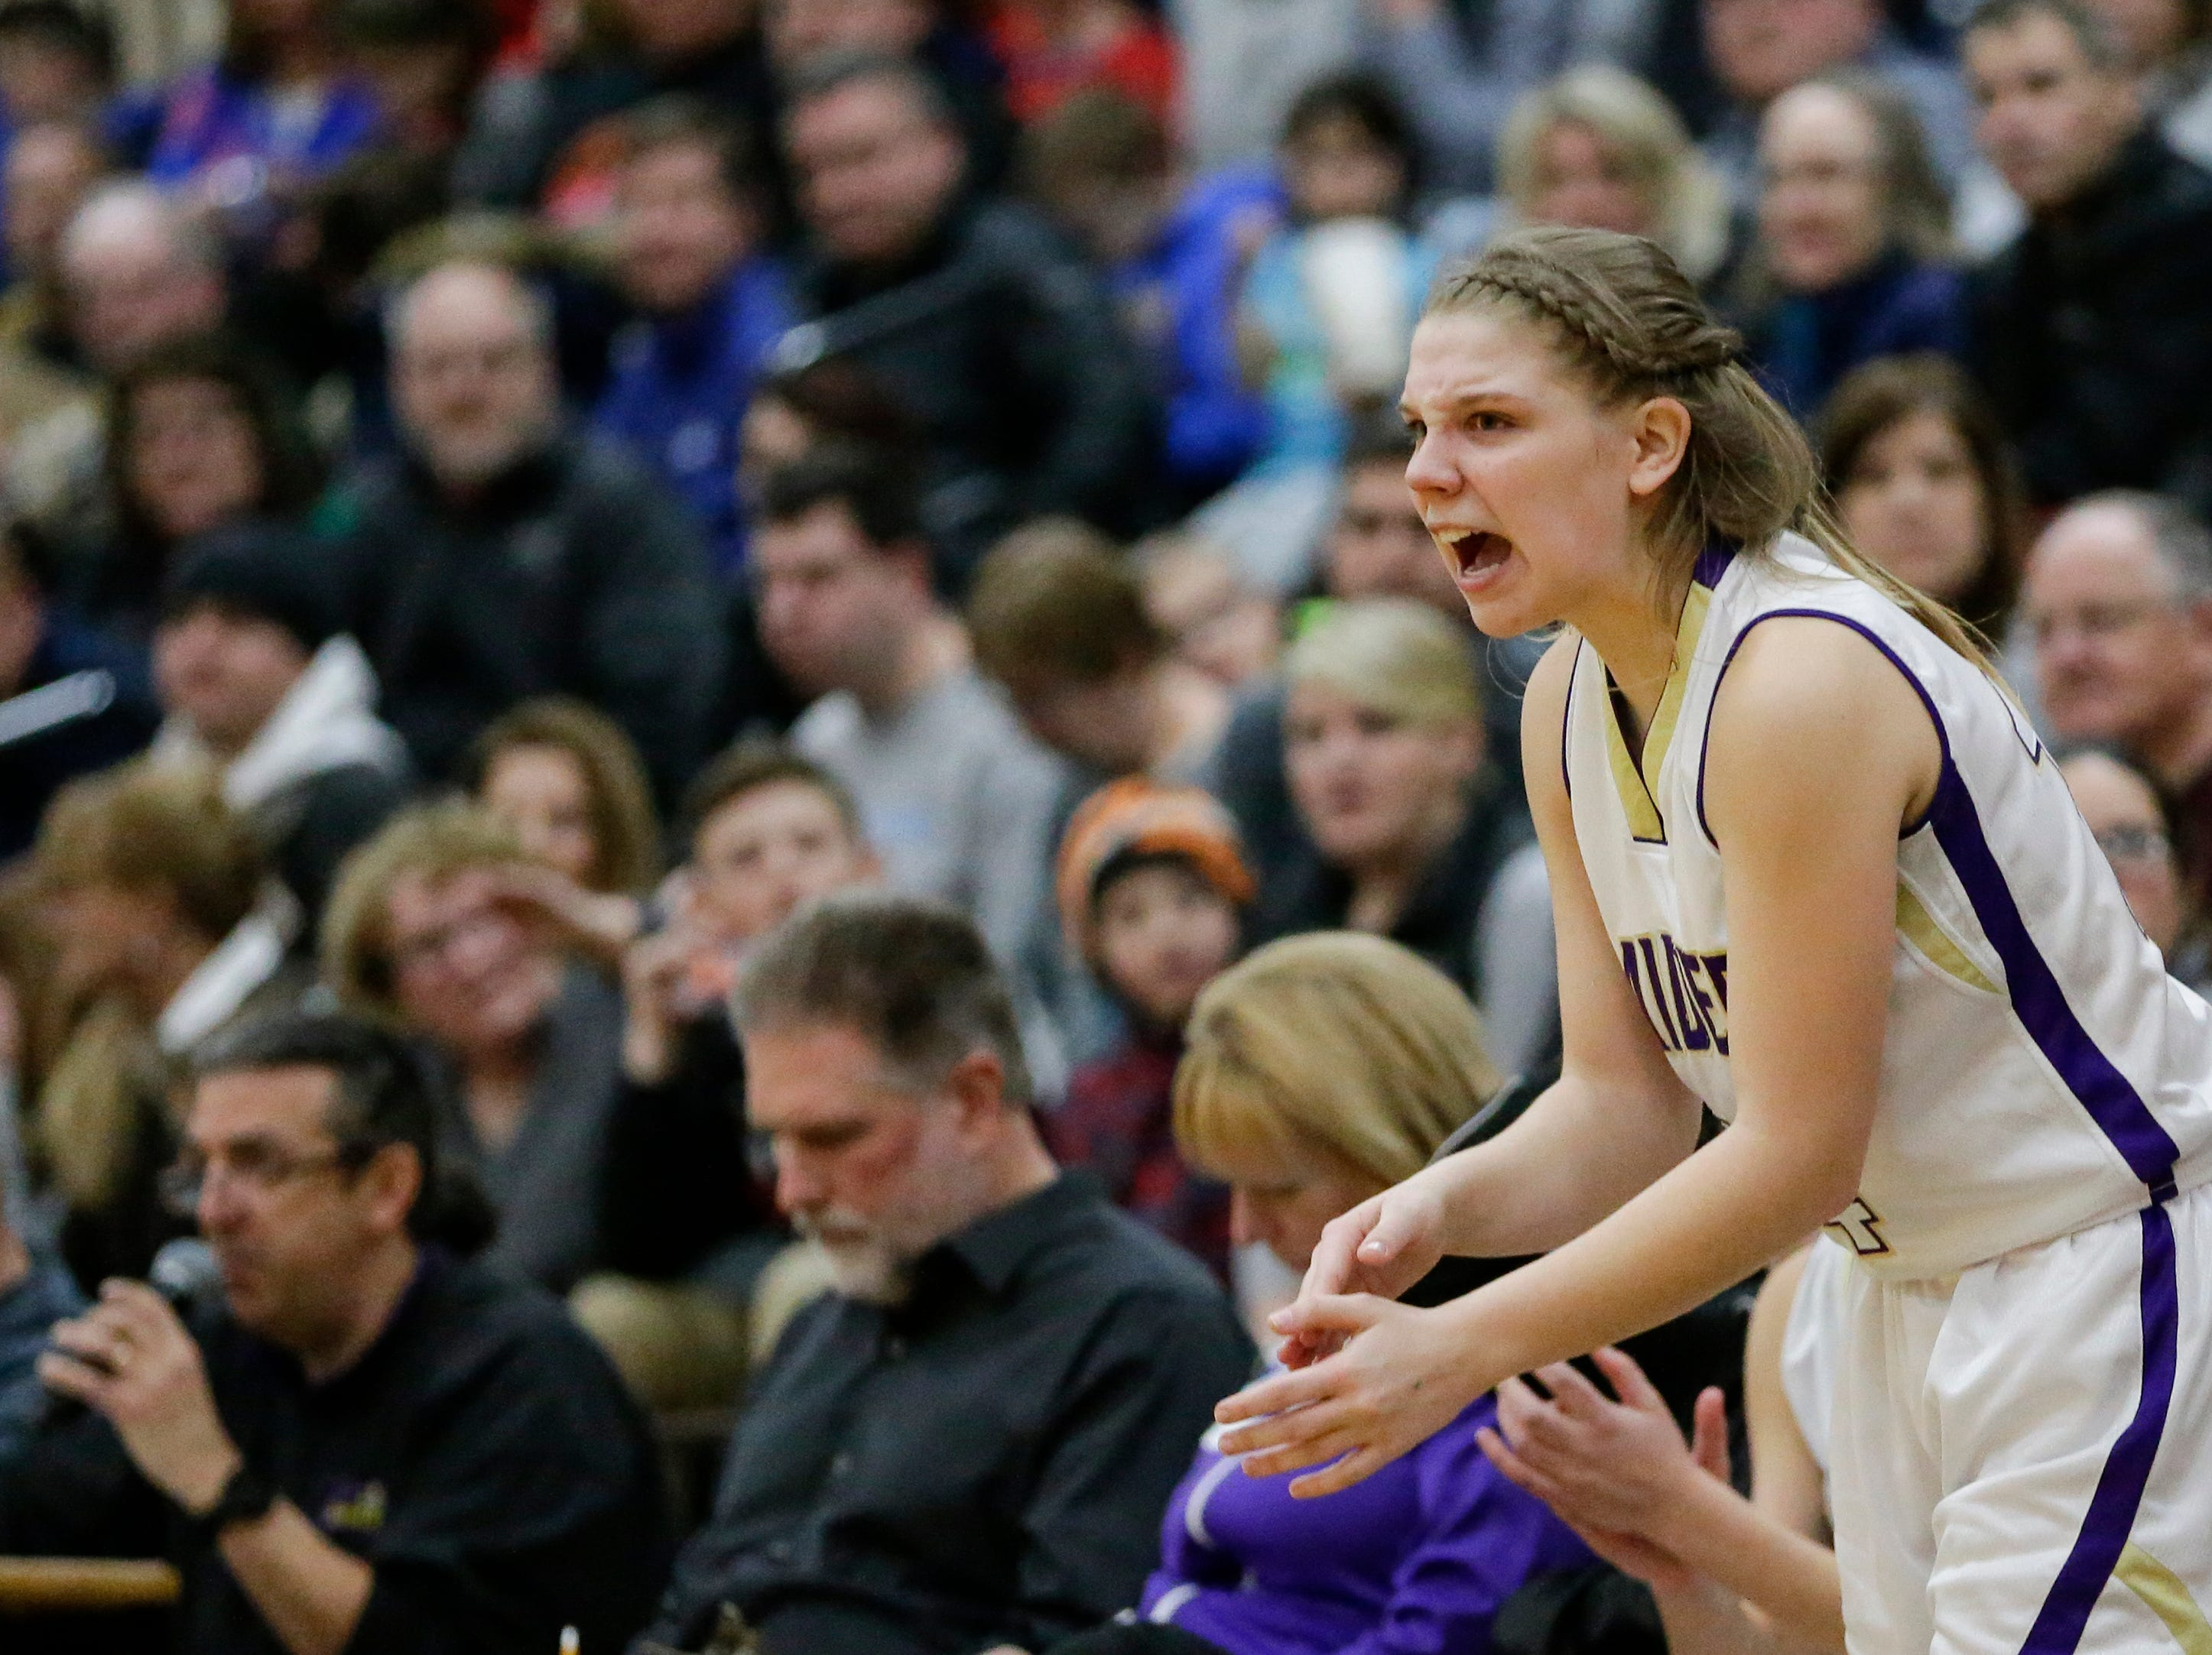 Two Rivers' Andrea Henrickson (14) cheers on her teammates from the bench against Roncalli at Two Rivers High School Friday, February 1, 2019, in Two Rivers, Wis. Joshua Clark/USA TODAY NETWORK-Wisconsin